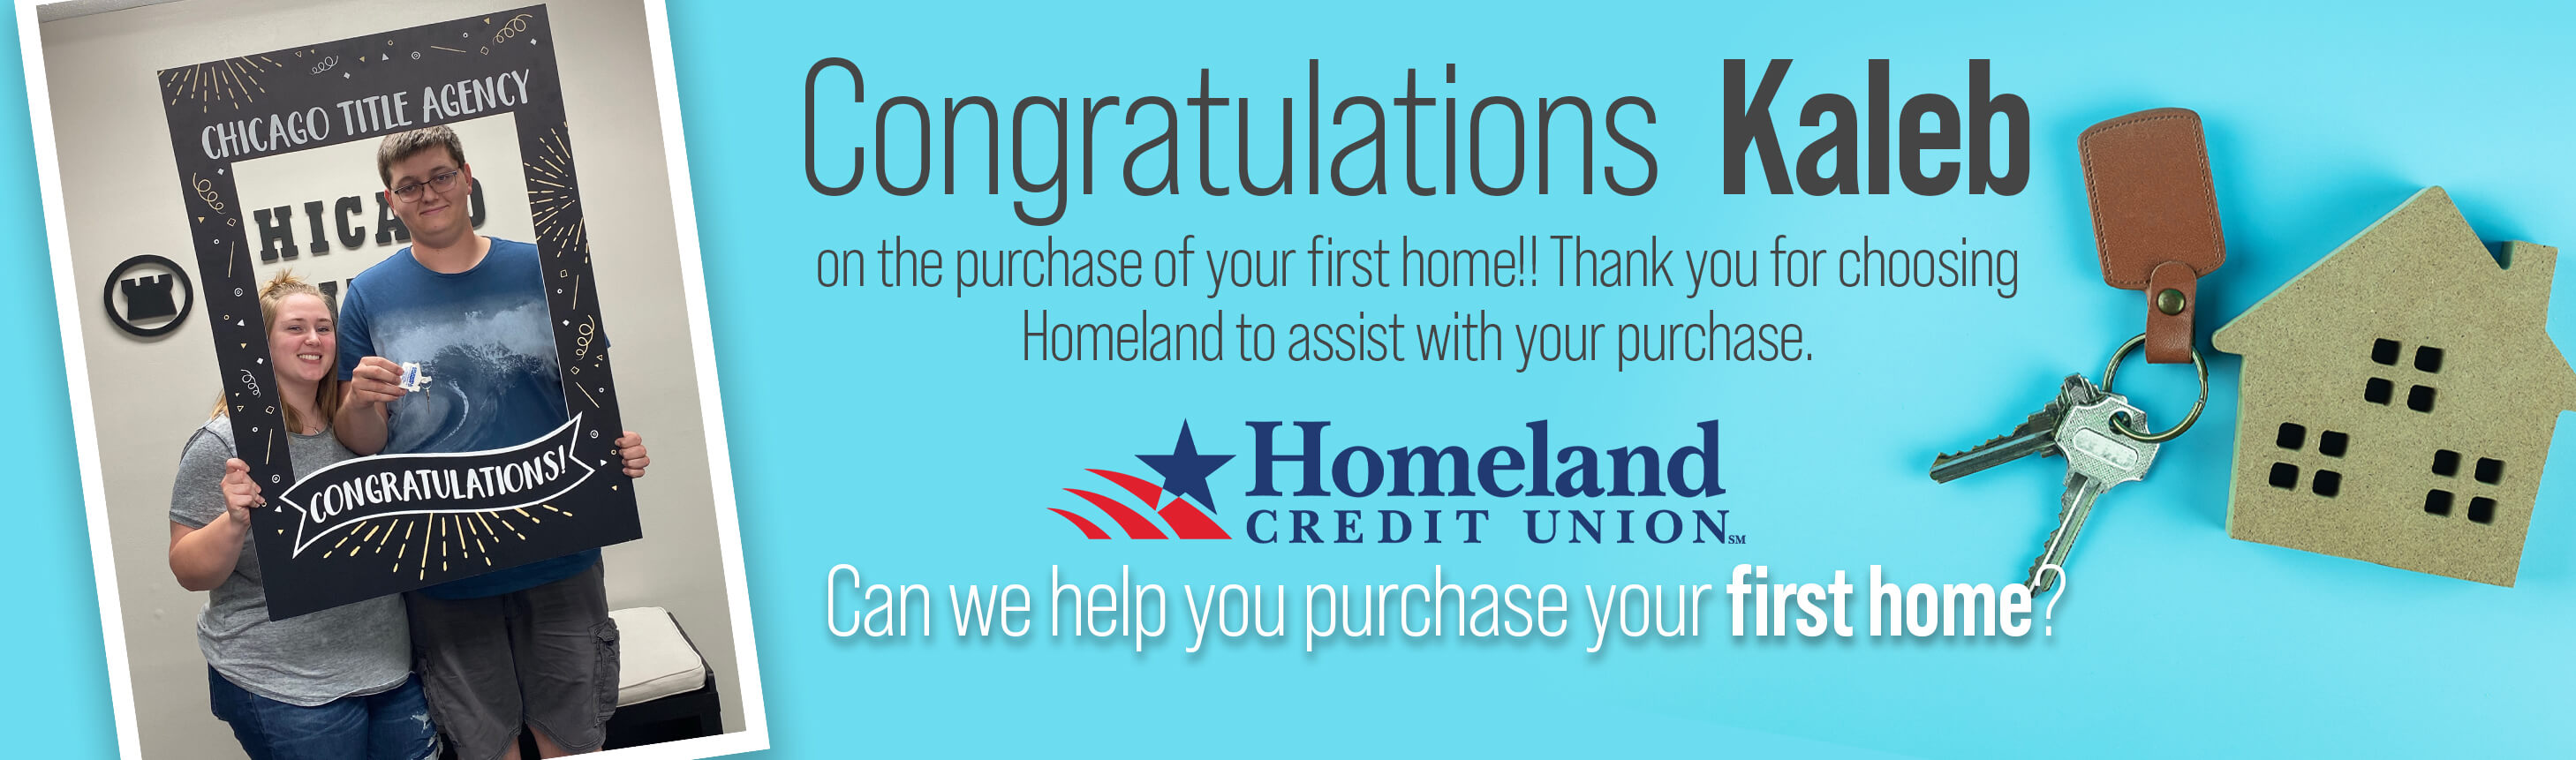 Congratulations Kaleb on the purchase of your first home!! Thank you for choosing Homeland to assist with your purchase. Can we help you purchase your first home?